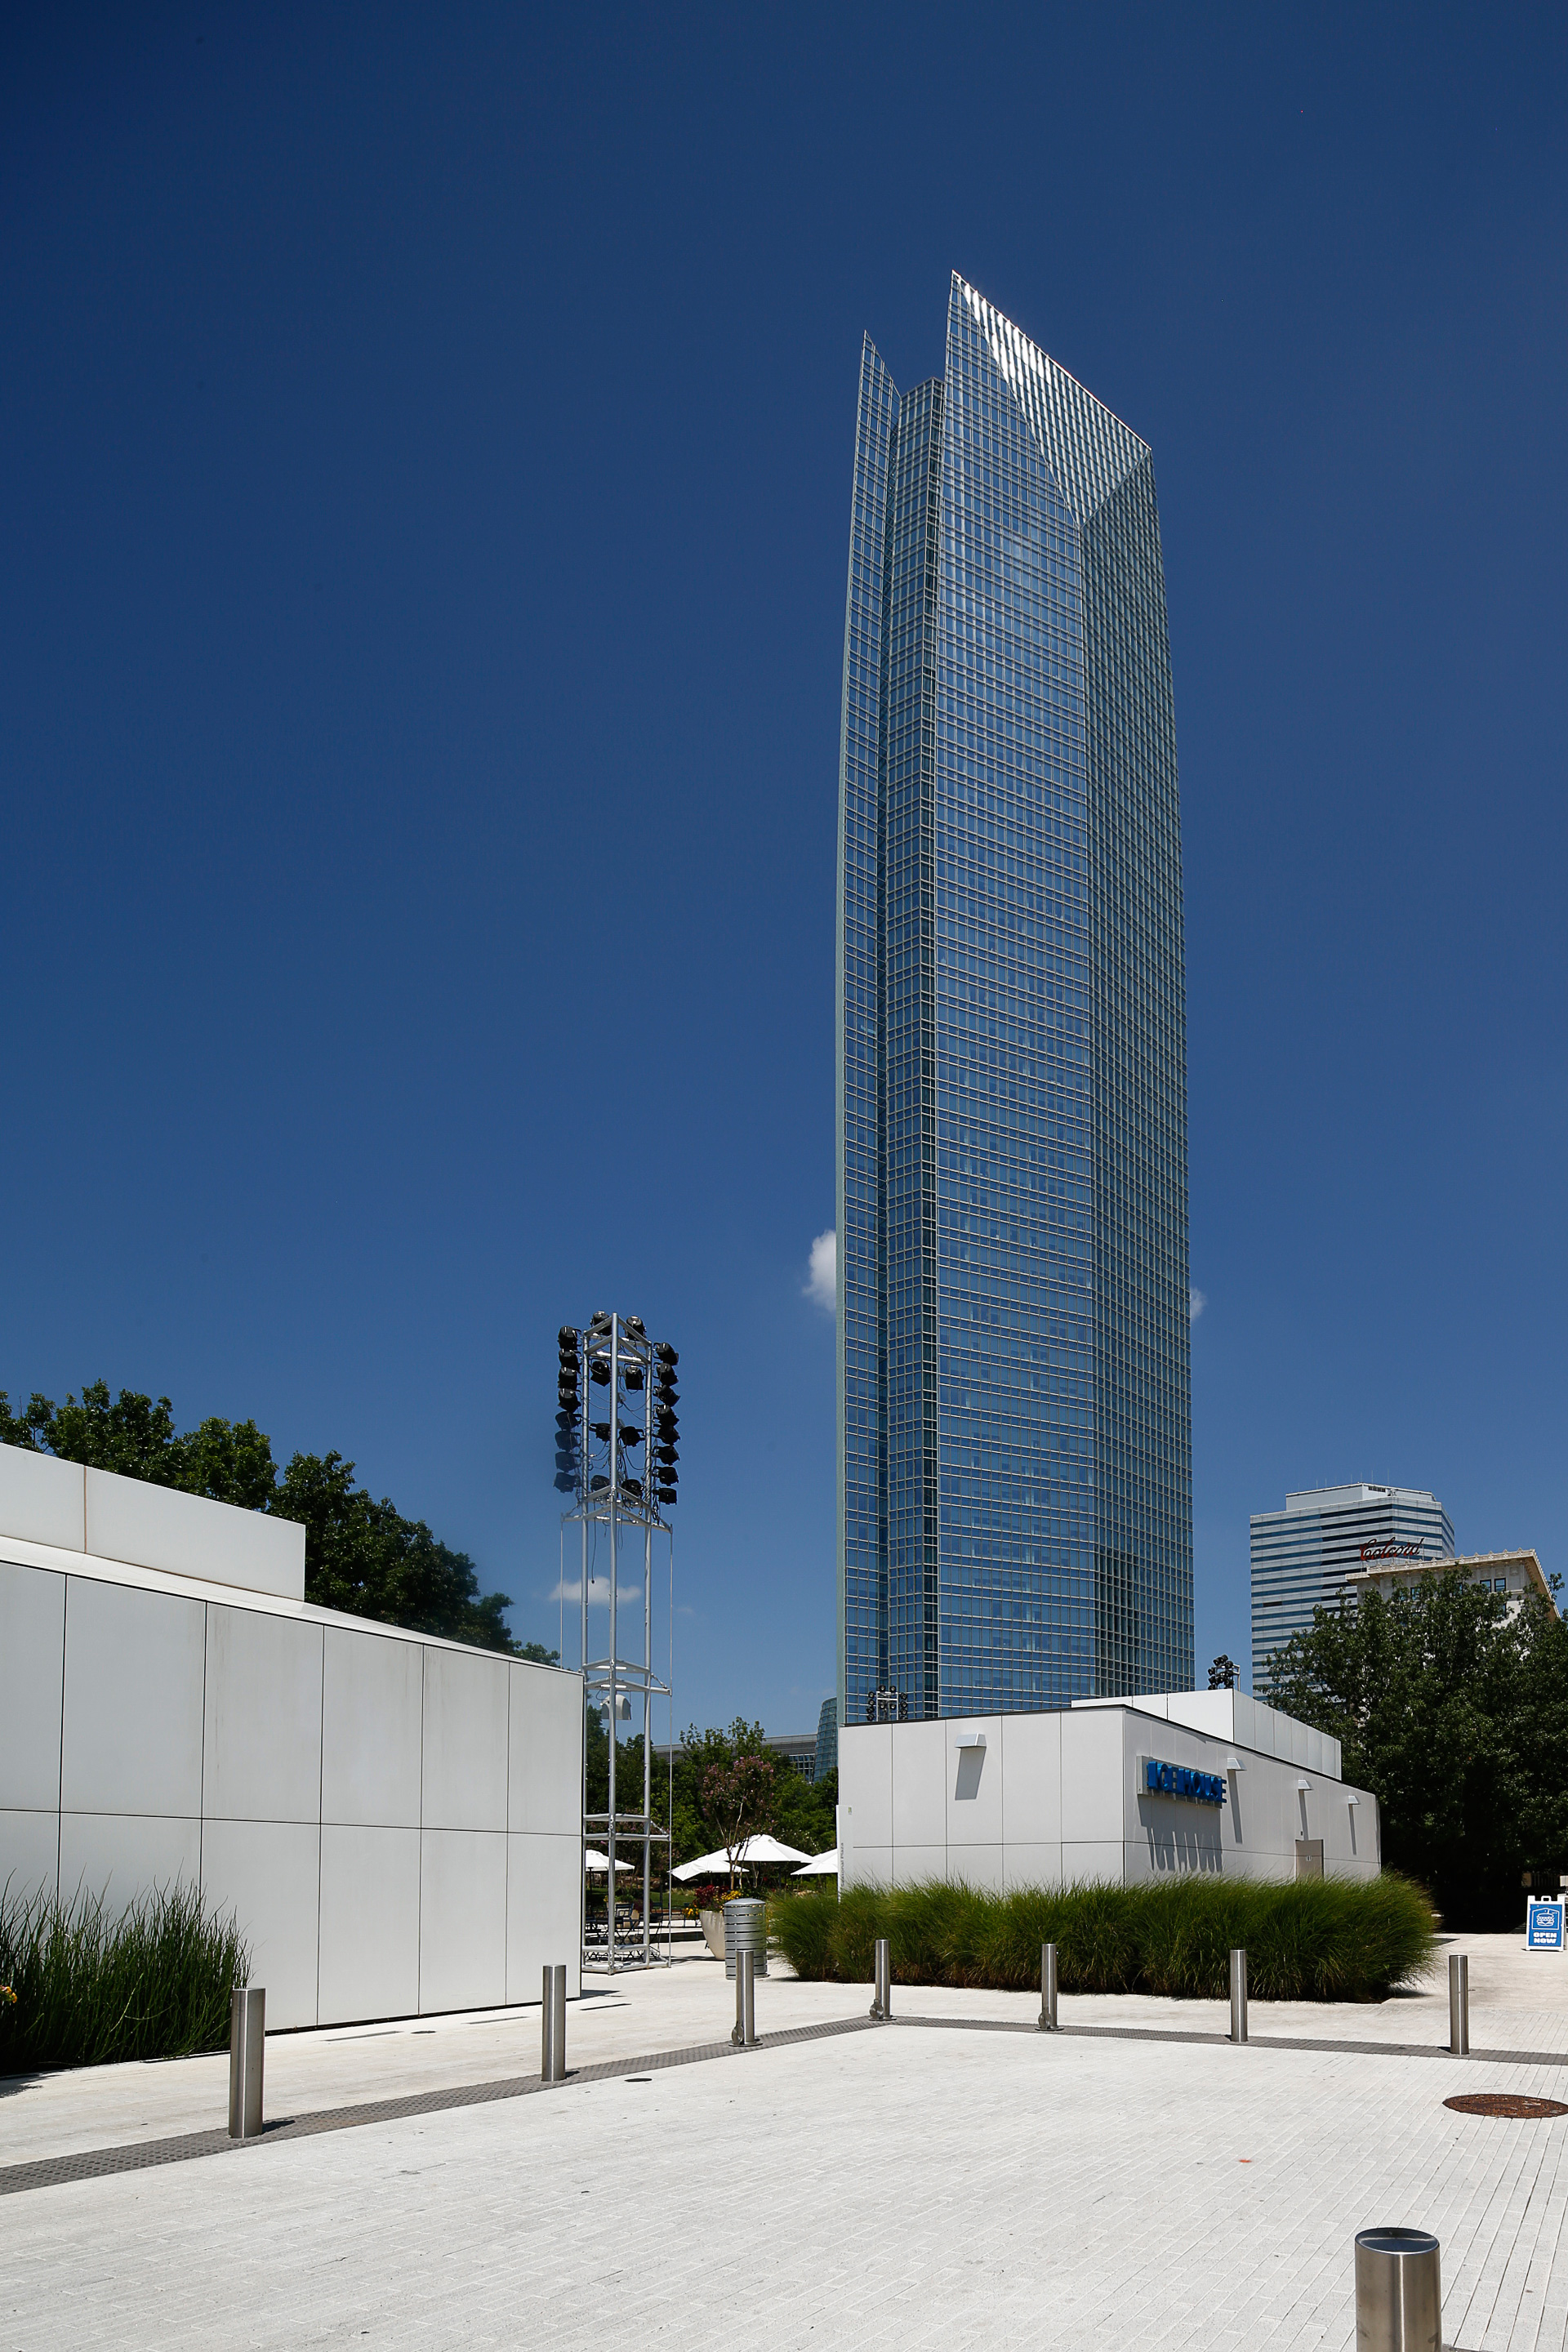 Devon Energy Towers above the Park House and Ice House